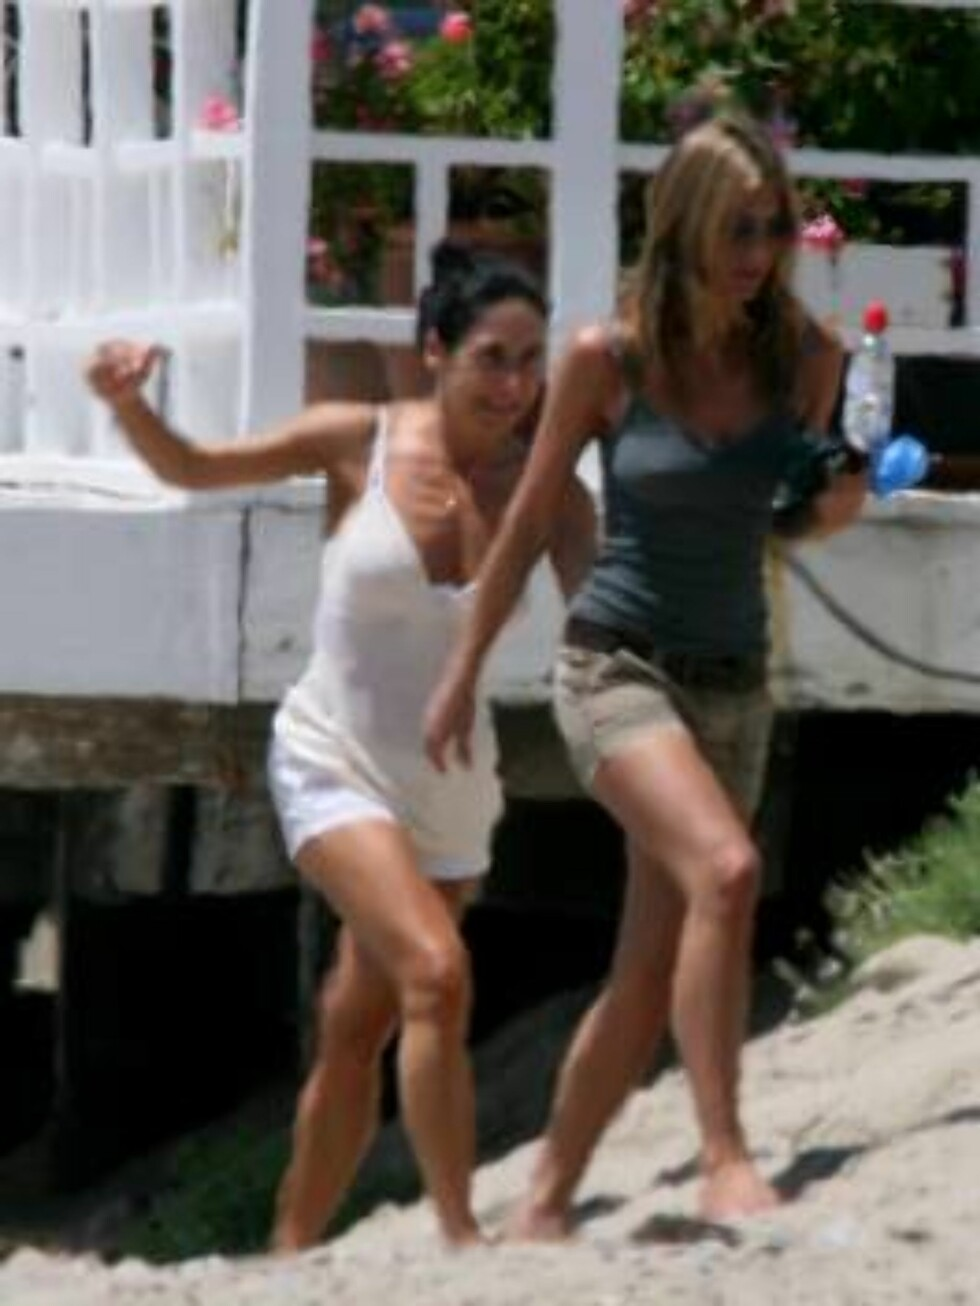 Malibu 2006-08-14  **Exclusive**  Jennifer Aniston takes time out for a stroll on the beach in Malibu with a friend to clear her head and relax. Picture: Jennifer Aniston   Photo: Fame Pictures Code:4002  COPYRIGHT STELLA PICTURES Foto: Stella Pictures